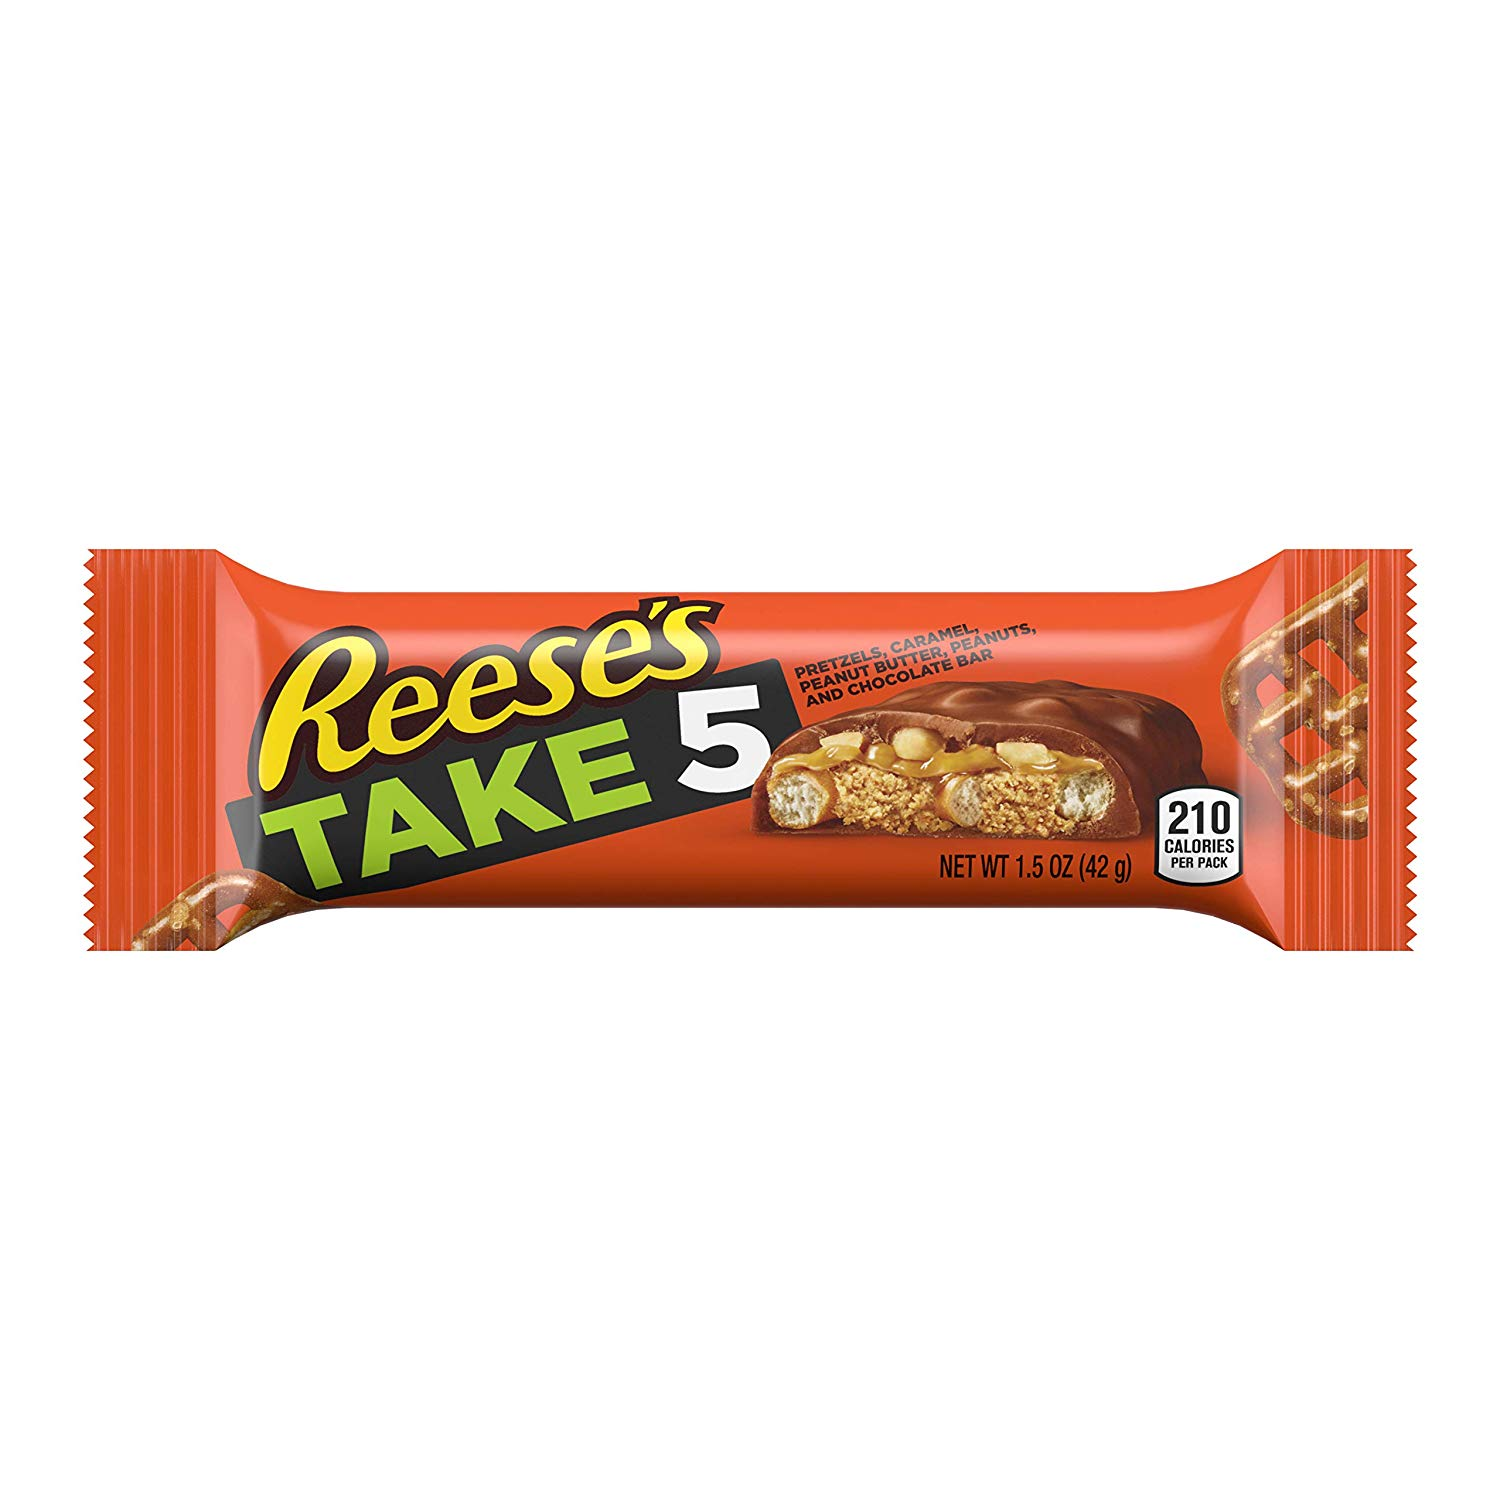 Reese's Take 5 Bar (42g)-0